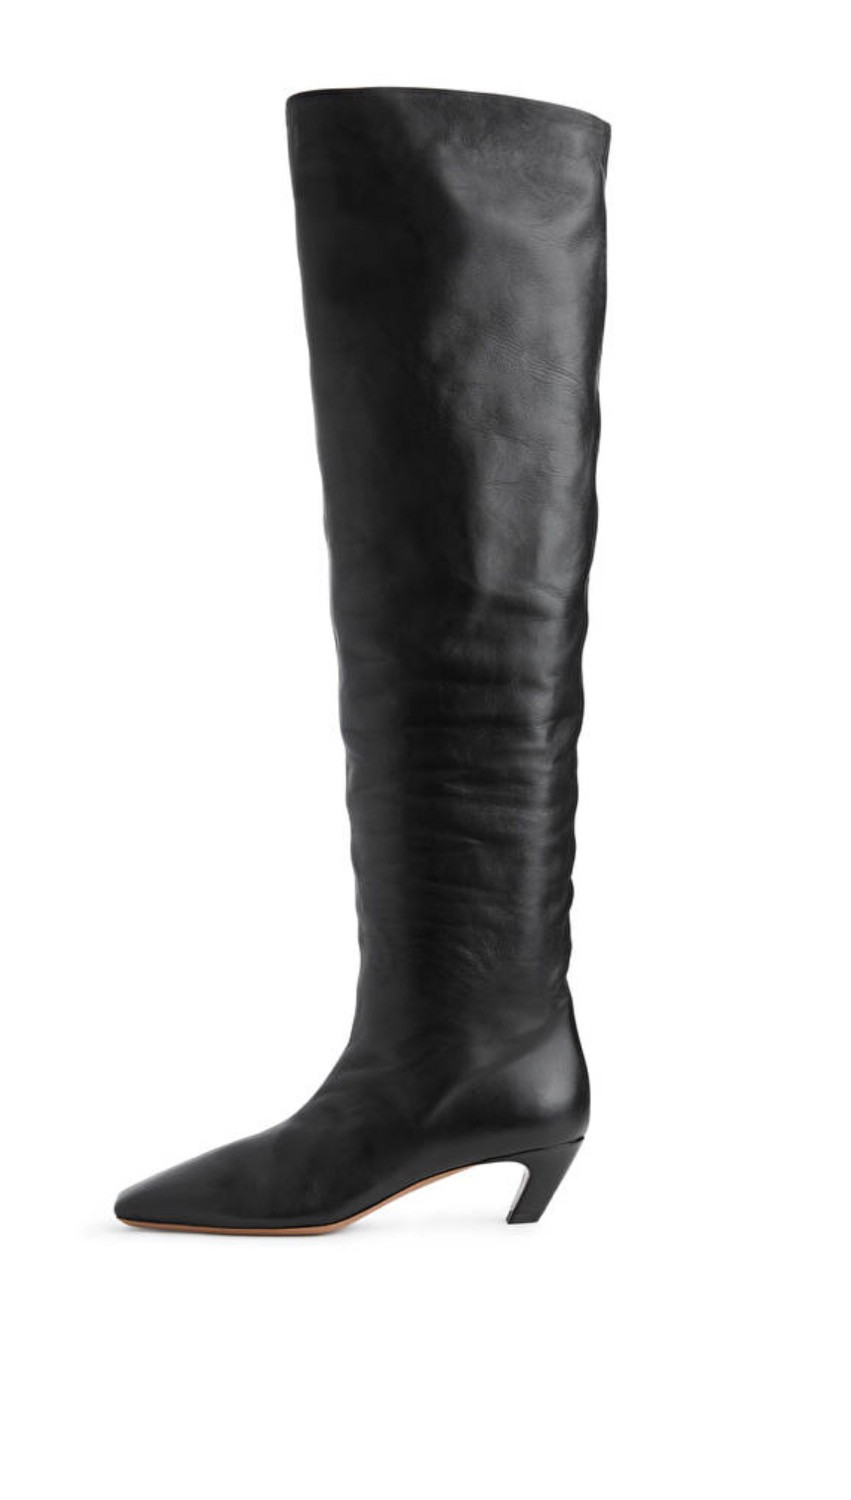 Black over the knee boots with low heel